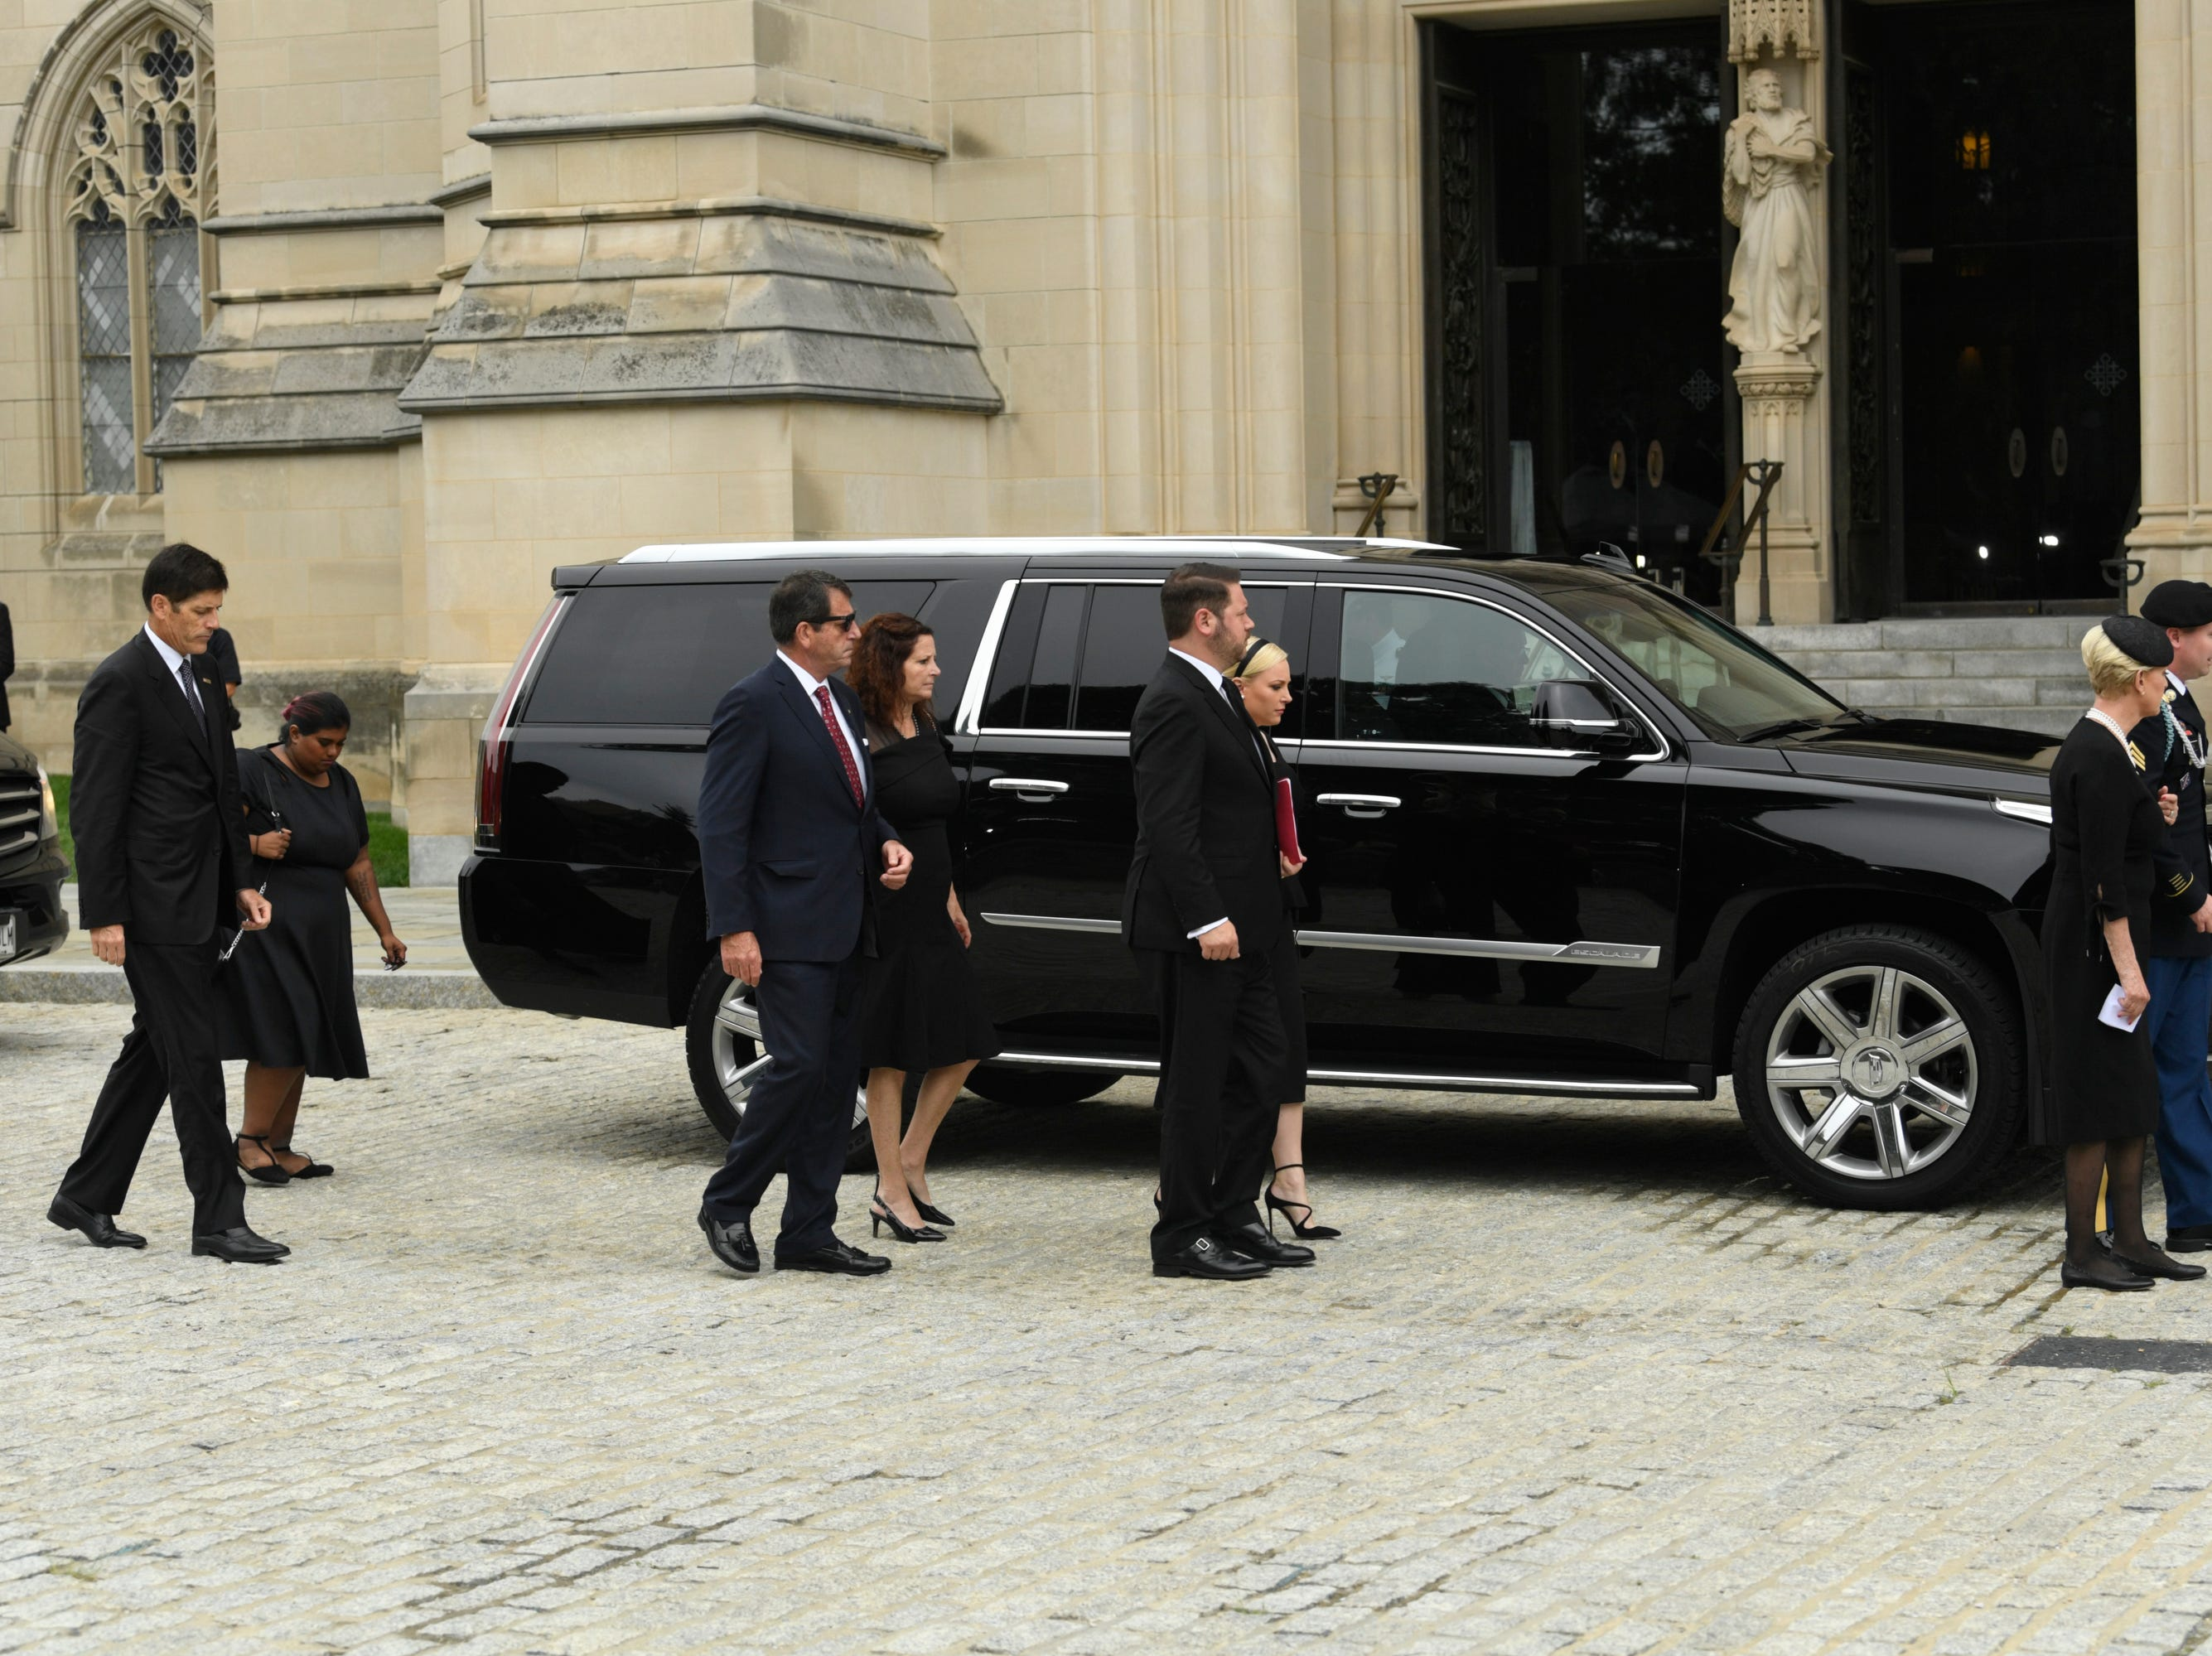 9/1/18 9:41:10 AM -- Washington, DC, U.S.A  -- The McCain family arrives at the National Cathedral in Washington for a memorial service for John McCain on Sept. 1, 2018. Sen. McCain on Aug. 25. McCain died on Aug. 25. --    Photo by Jasper Colt, USA TODAY Staff